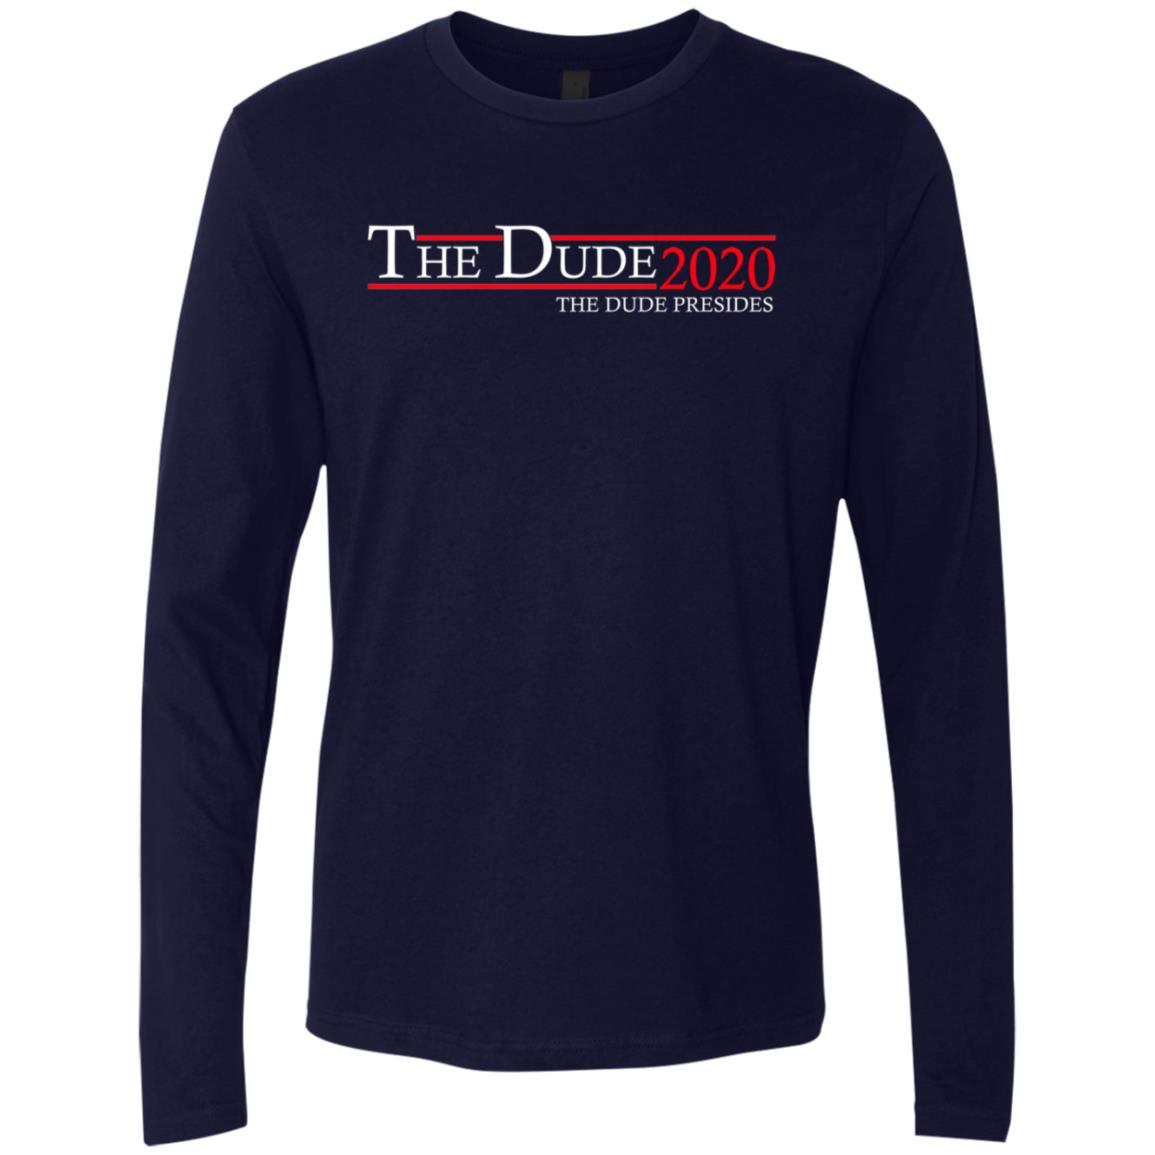 Dude 2020 Premium Long Sleeve